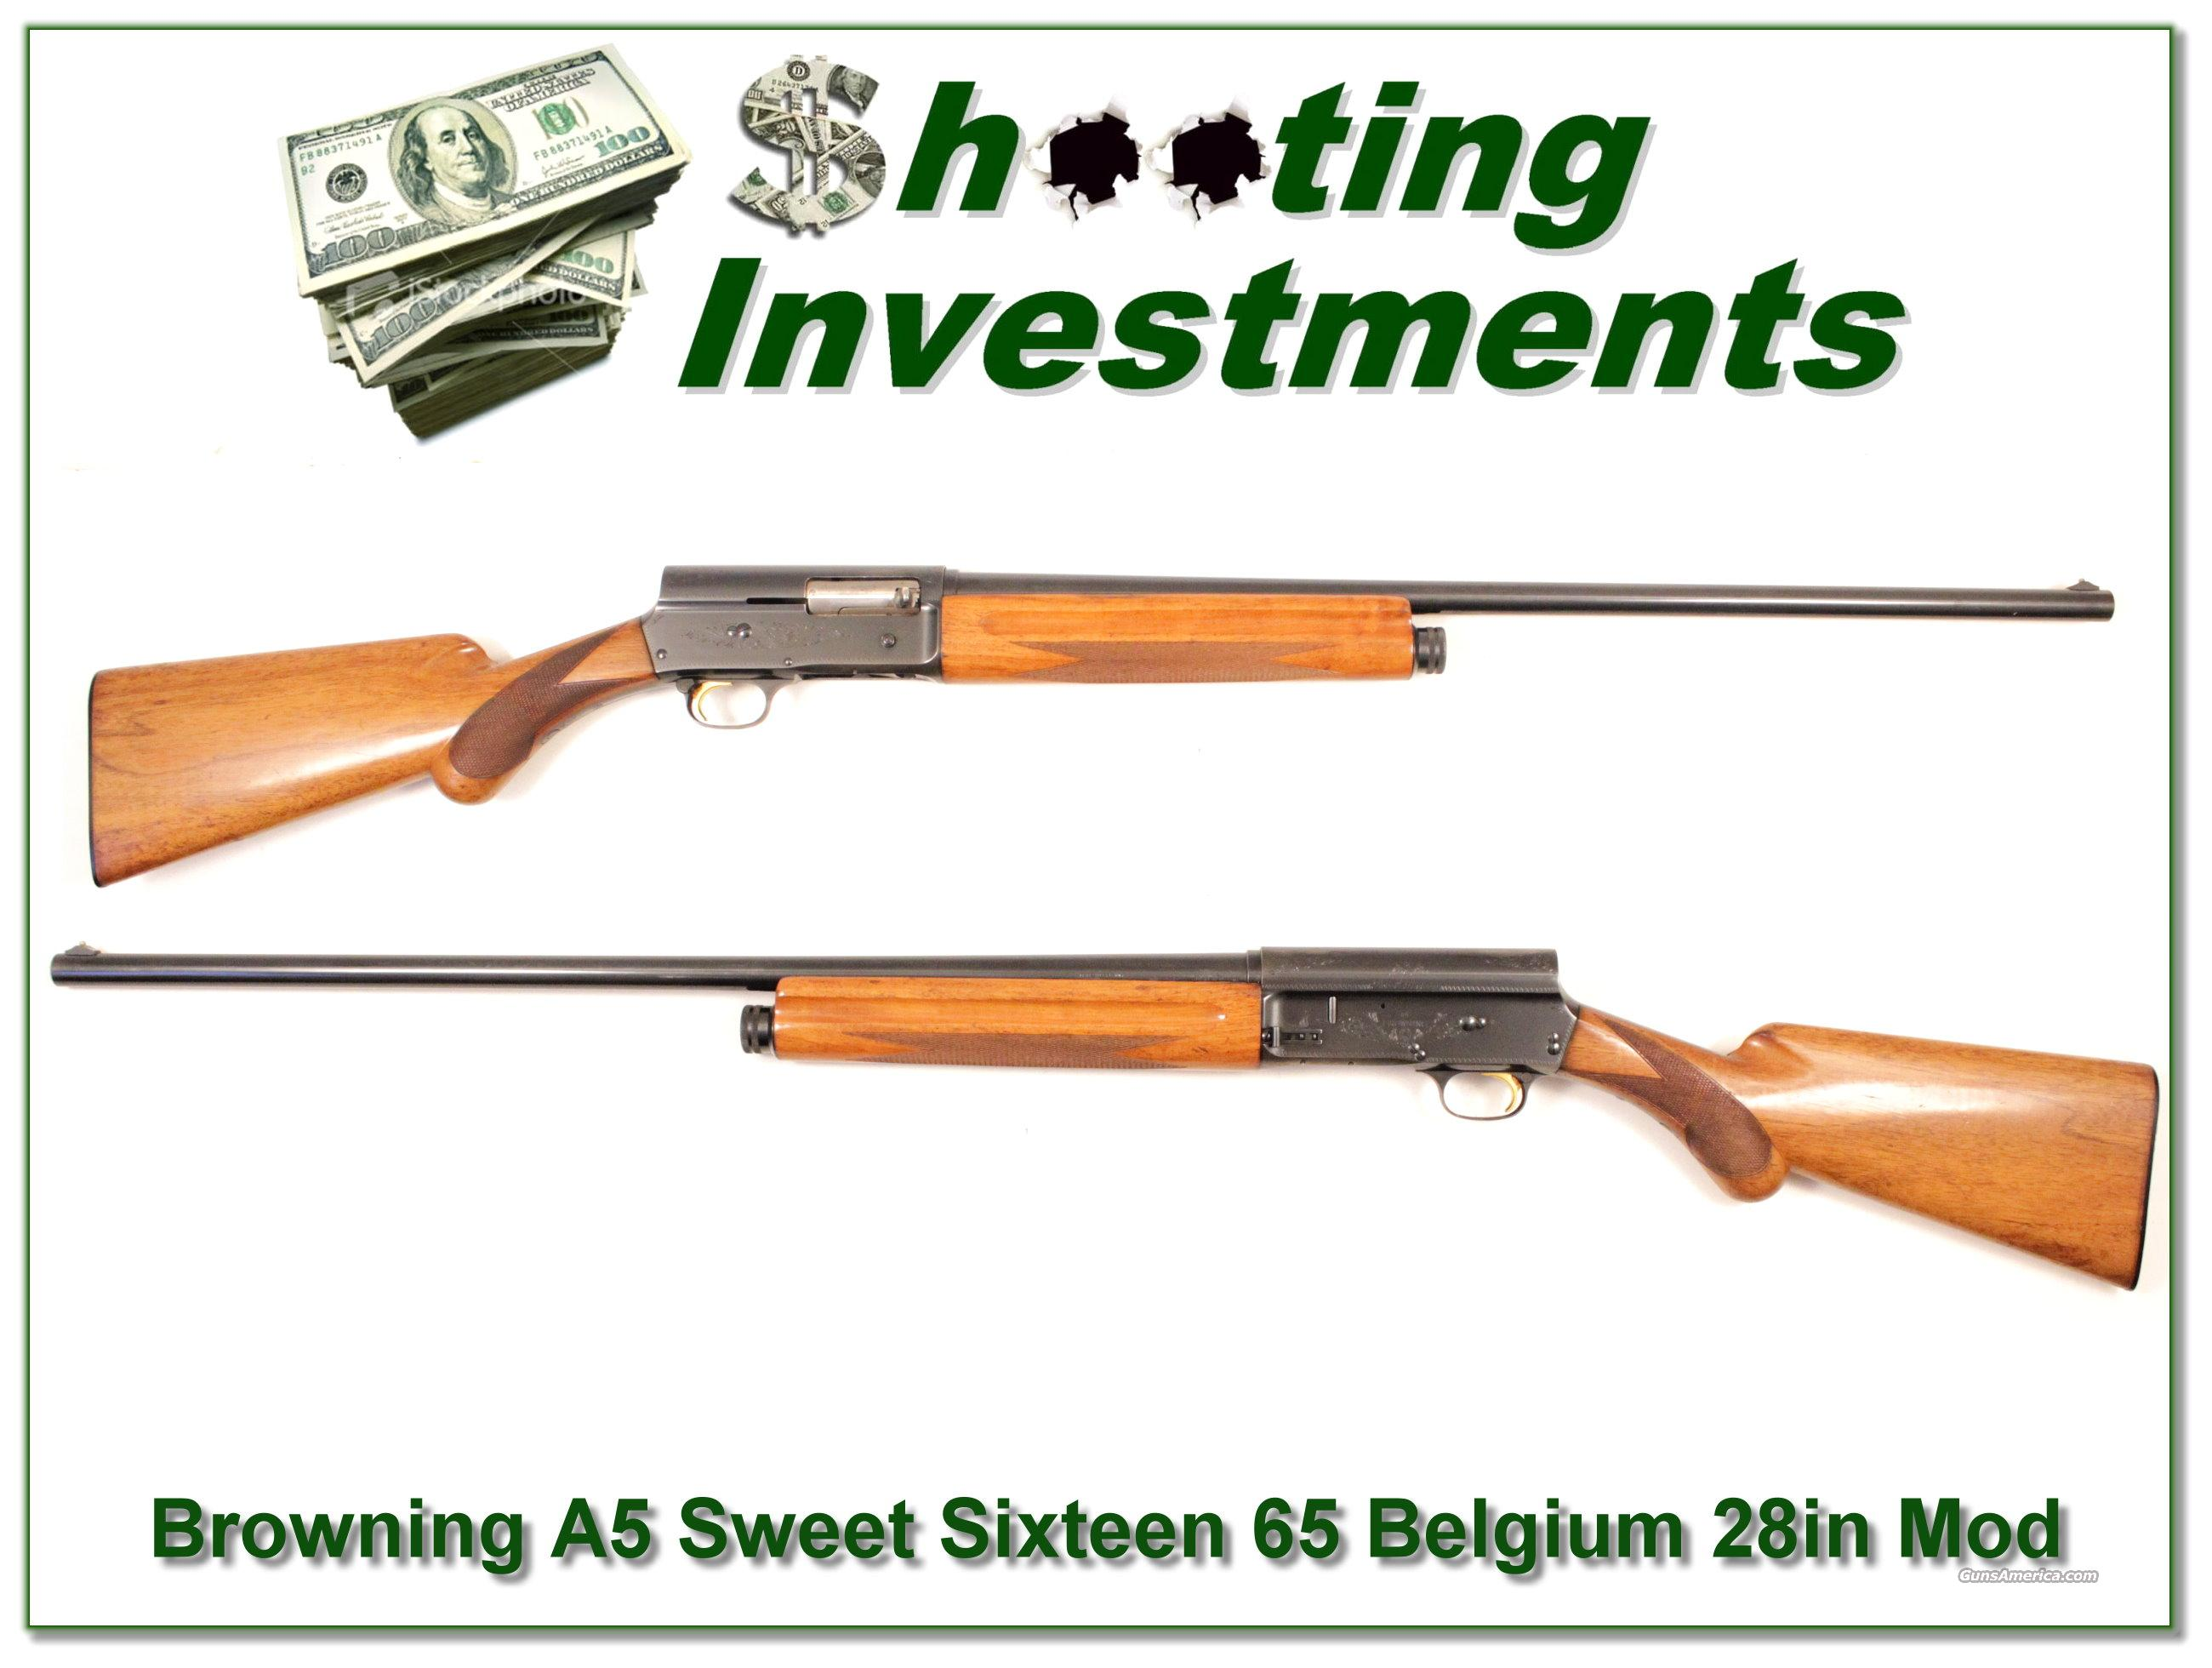 Browning A5 Sweet Sixteen 65 Belgium 28in Mod  Browning, shotgun, semi-auto, 16  Guns > Shotguns > Browning Shotguns > Autoloaders > Hunting